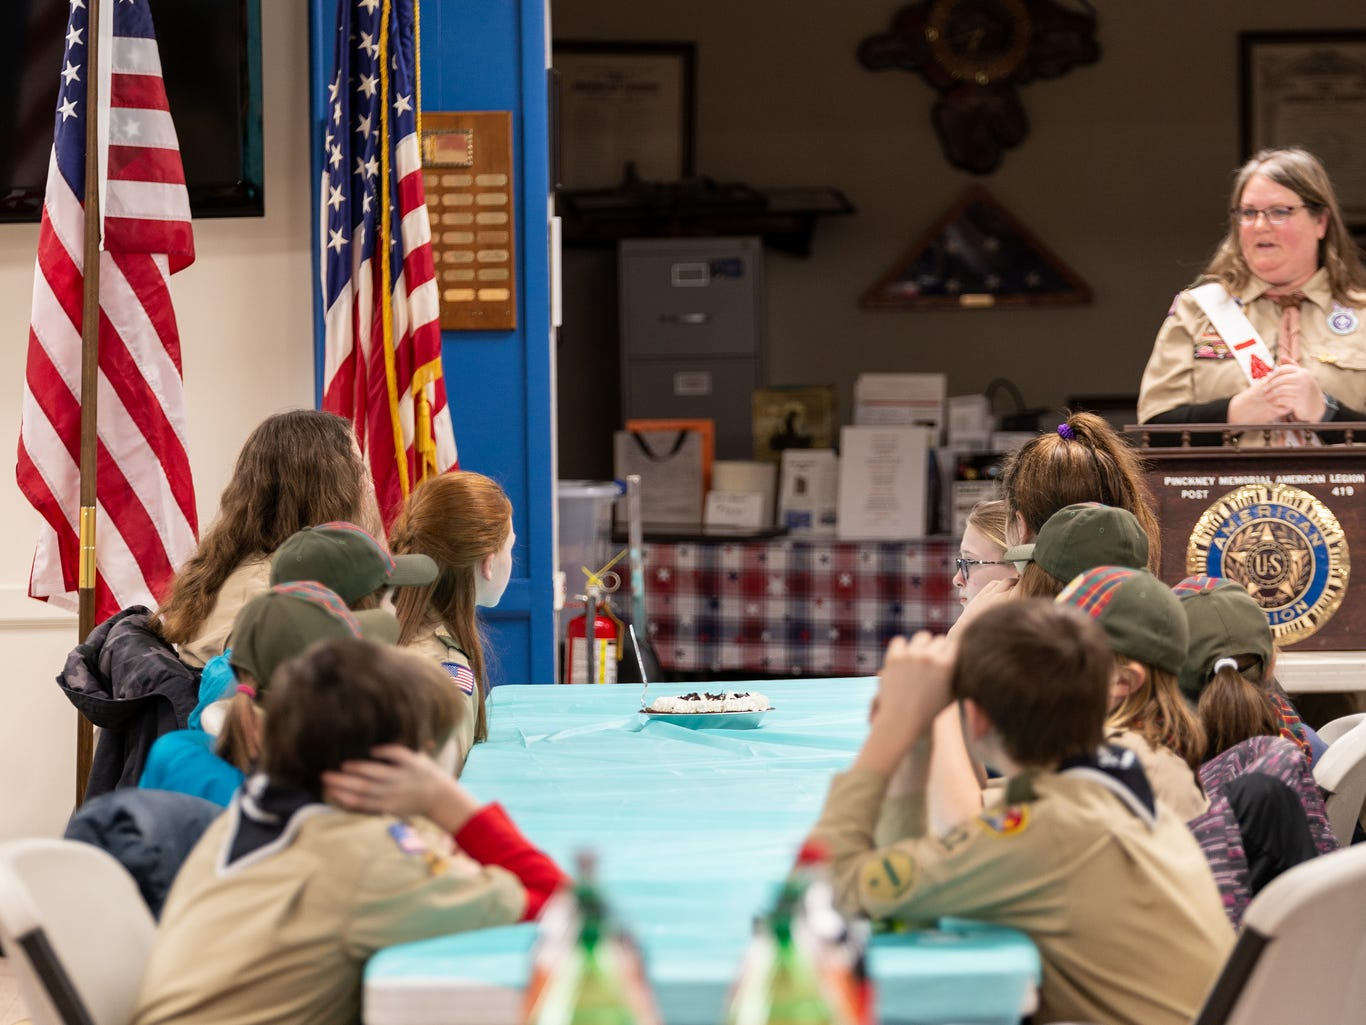 Heather Hudson, scout master for Troop 310, talks about her experience with scouting on Monday Feb. 18, 2019.